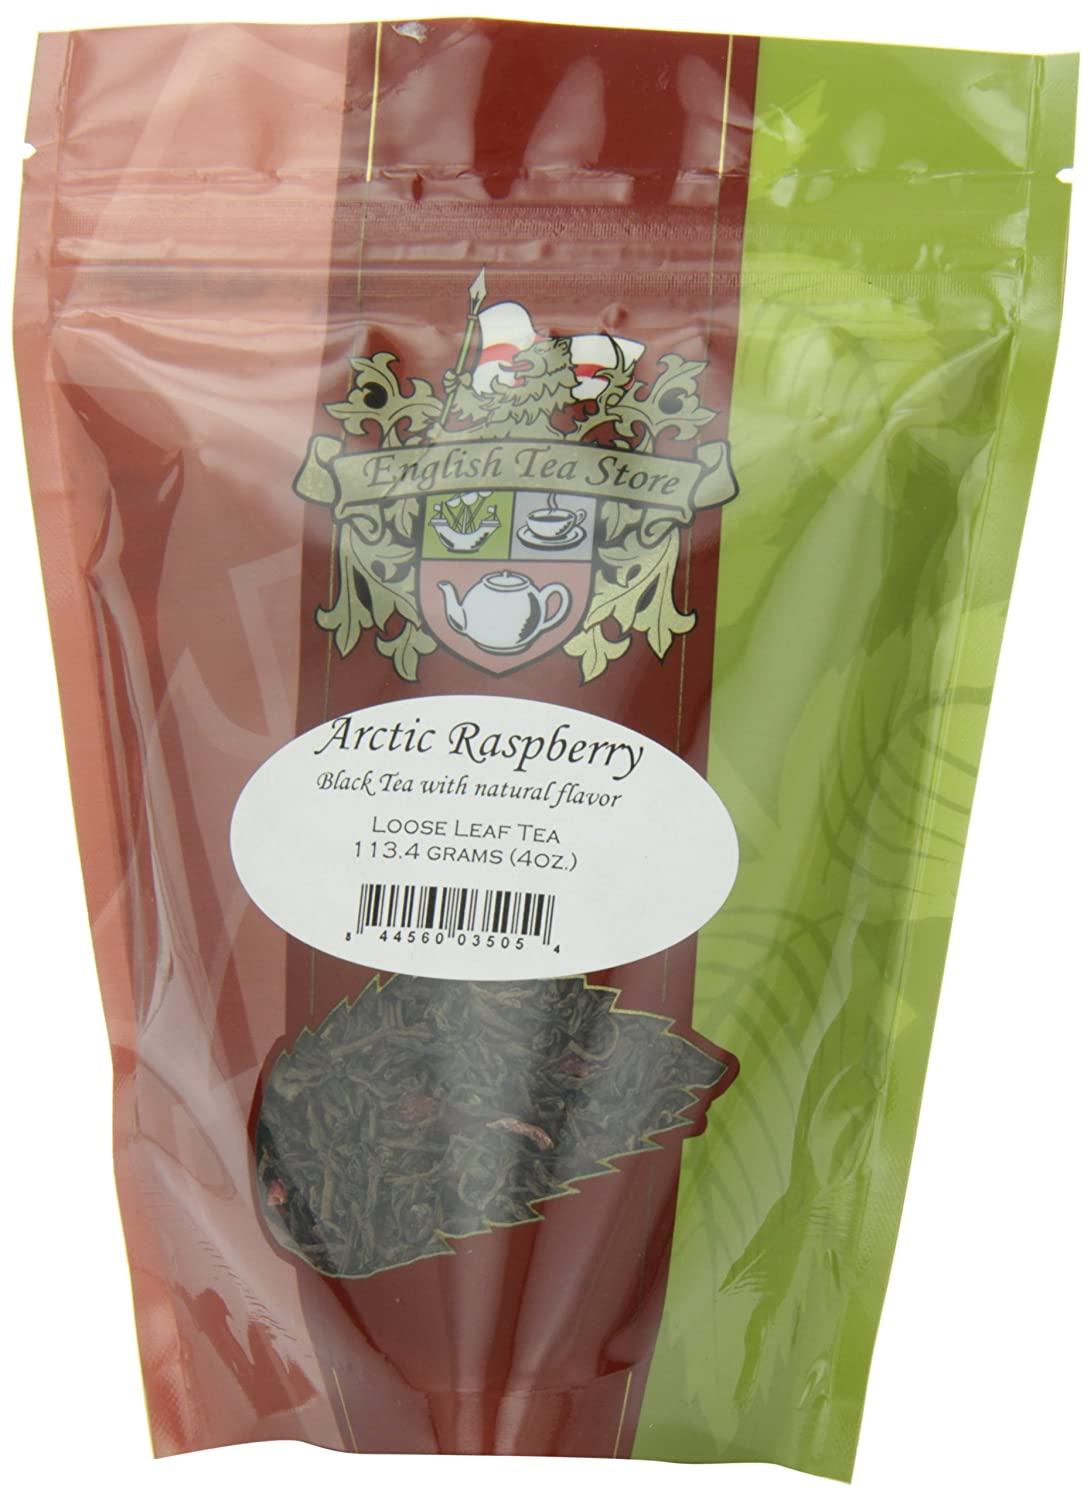 English Tea Store Loose Leaf, Arctic Raspberry Naturally flavored Black Tea Pouches - 4oz, 4 Ounce